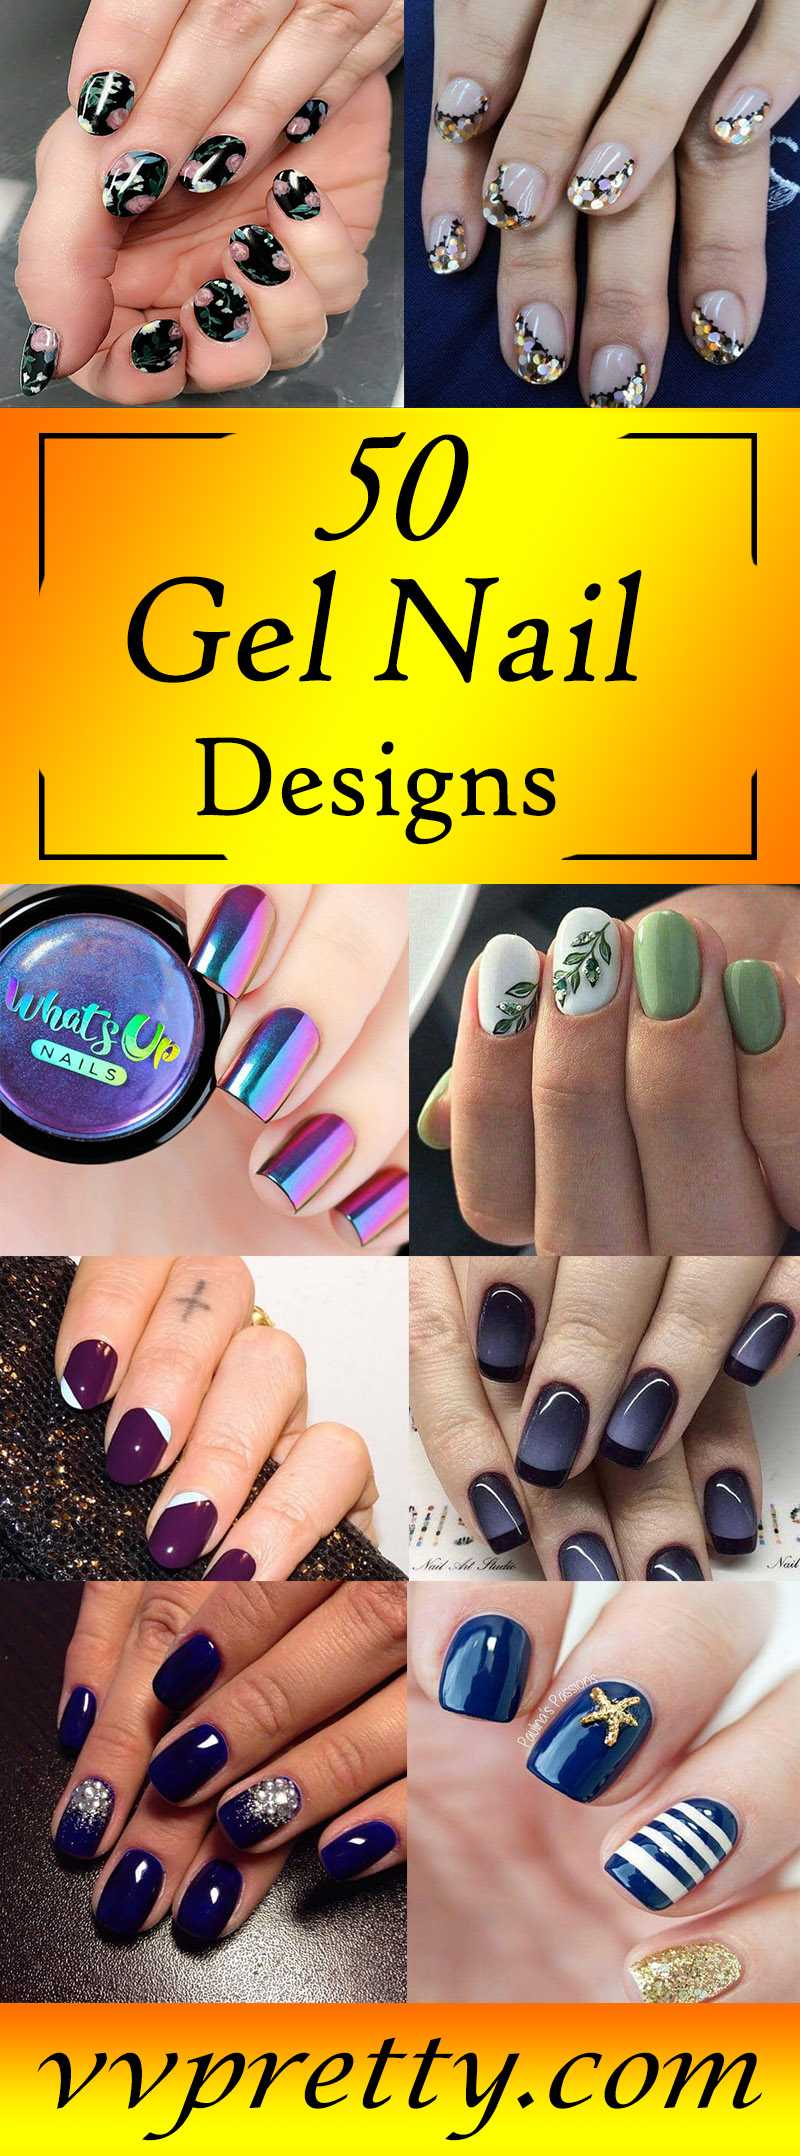 top Gel nail design 2019 vvpretty